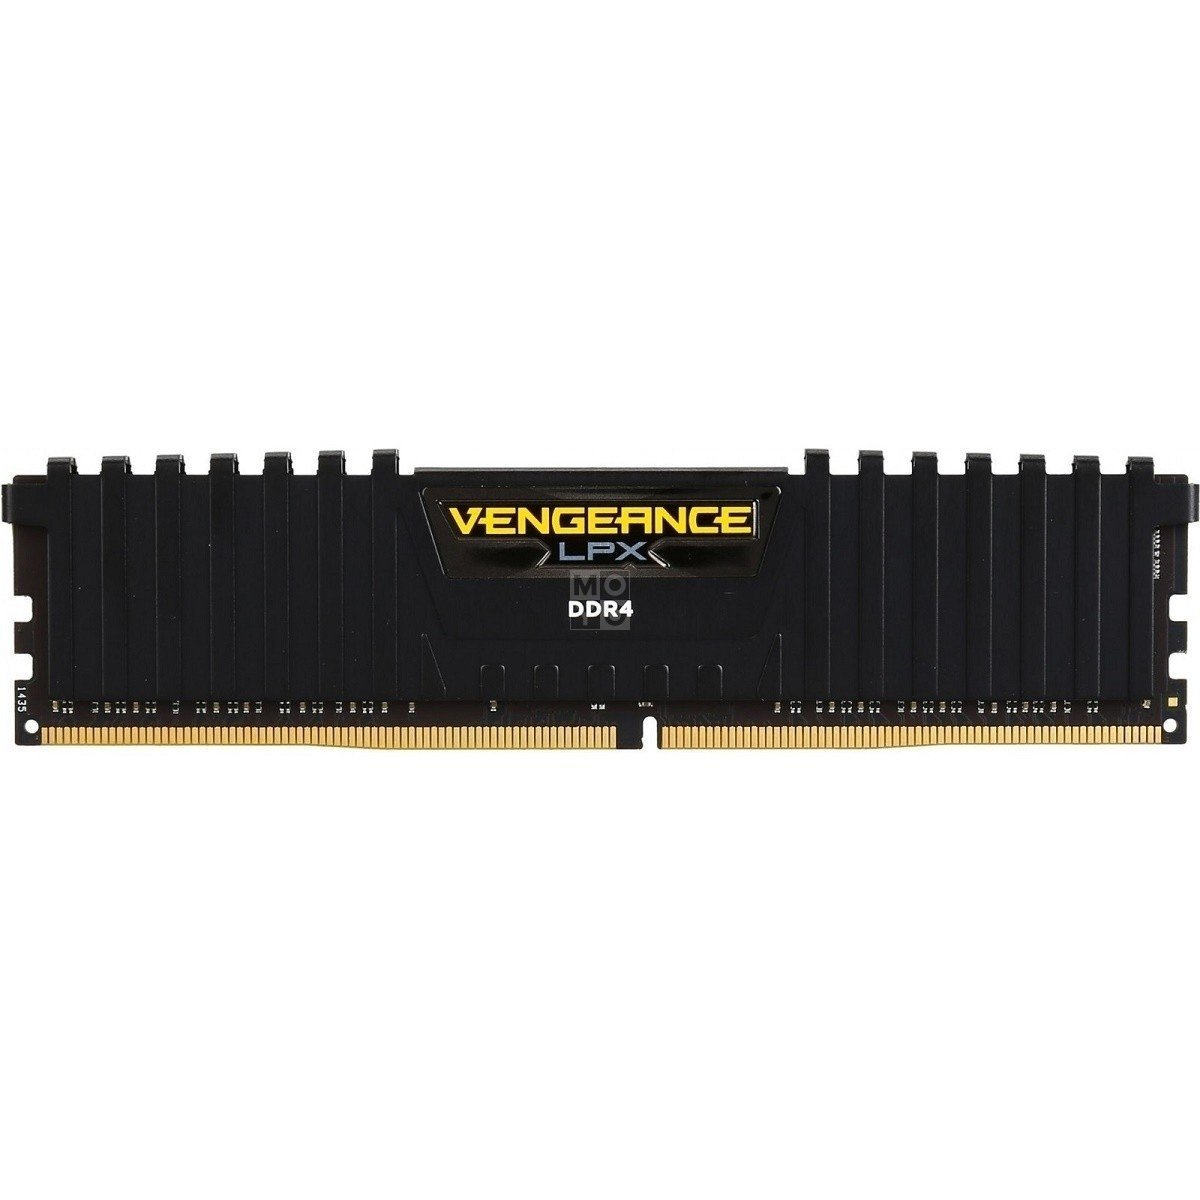 Corsair 16 GB DDR4 2666 MHz Vengeance LPX Black (CMK16GX4M1A2666C16) фото 1 магазина компьютерной техники luckylink.kiev.ua.